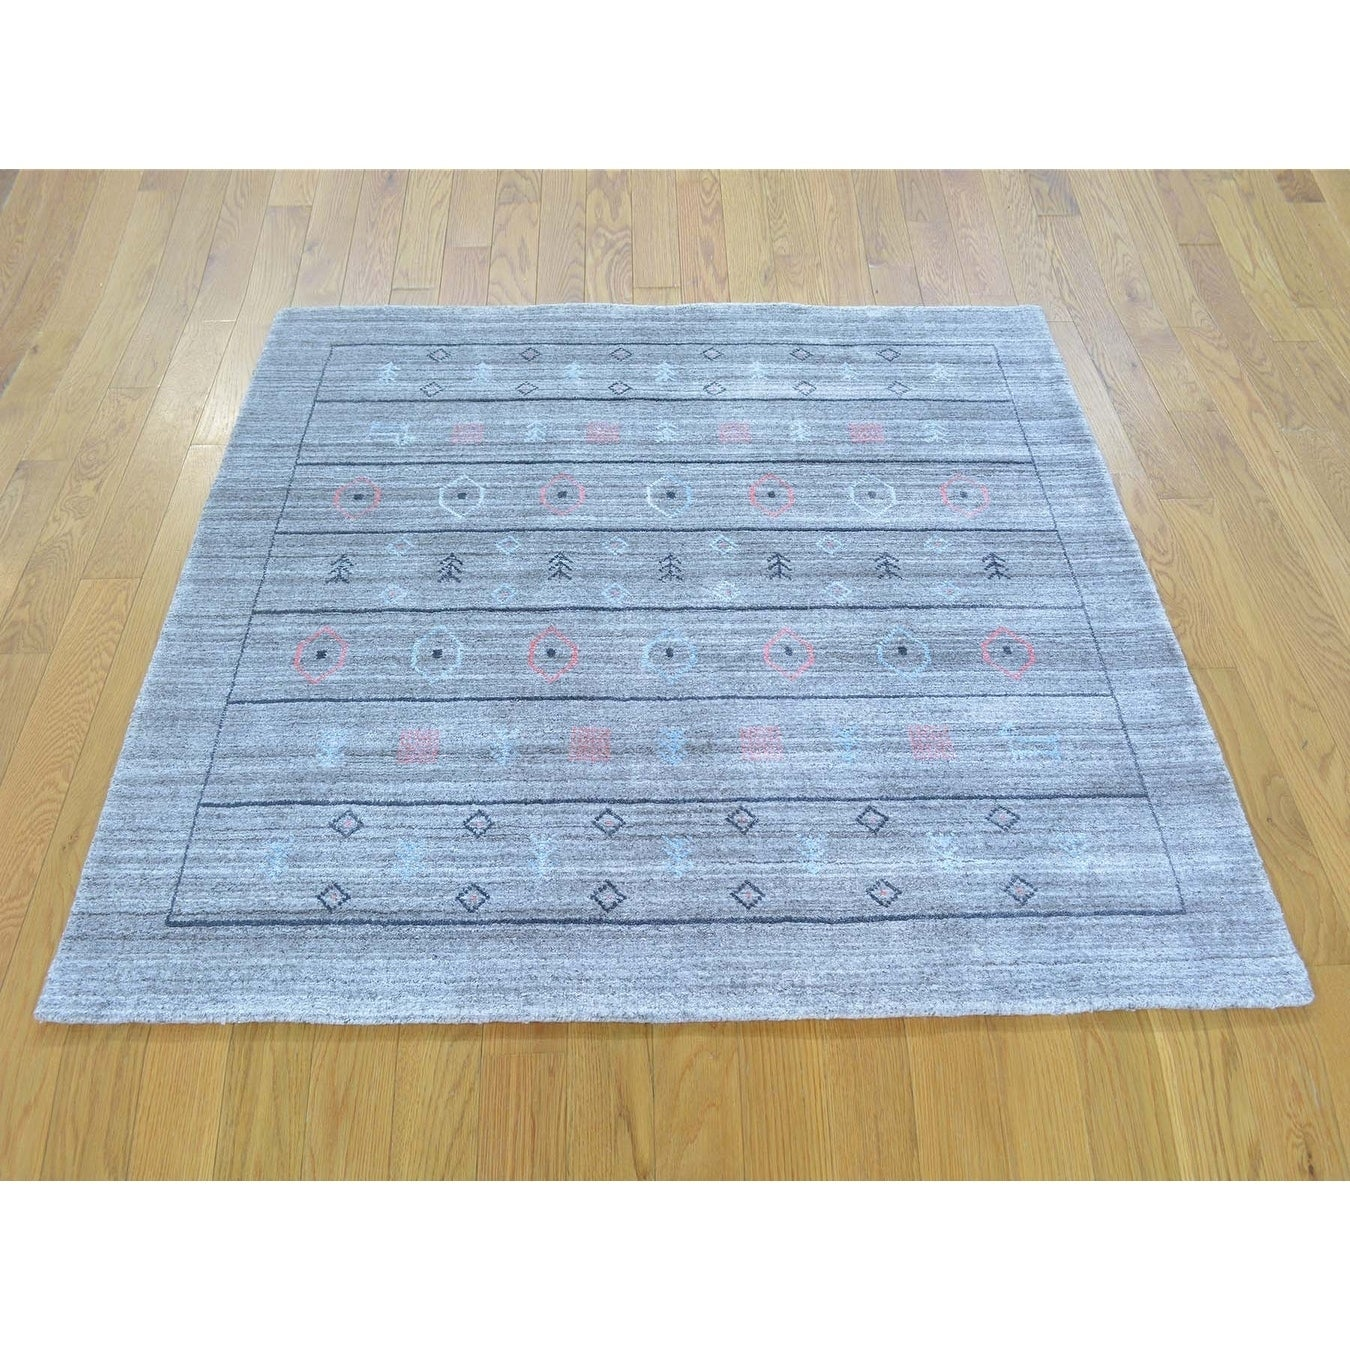 Hand Knotted Grey Modern & Contemporary with Wool & Silk Oriental Rug - 4'1 x 4'3